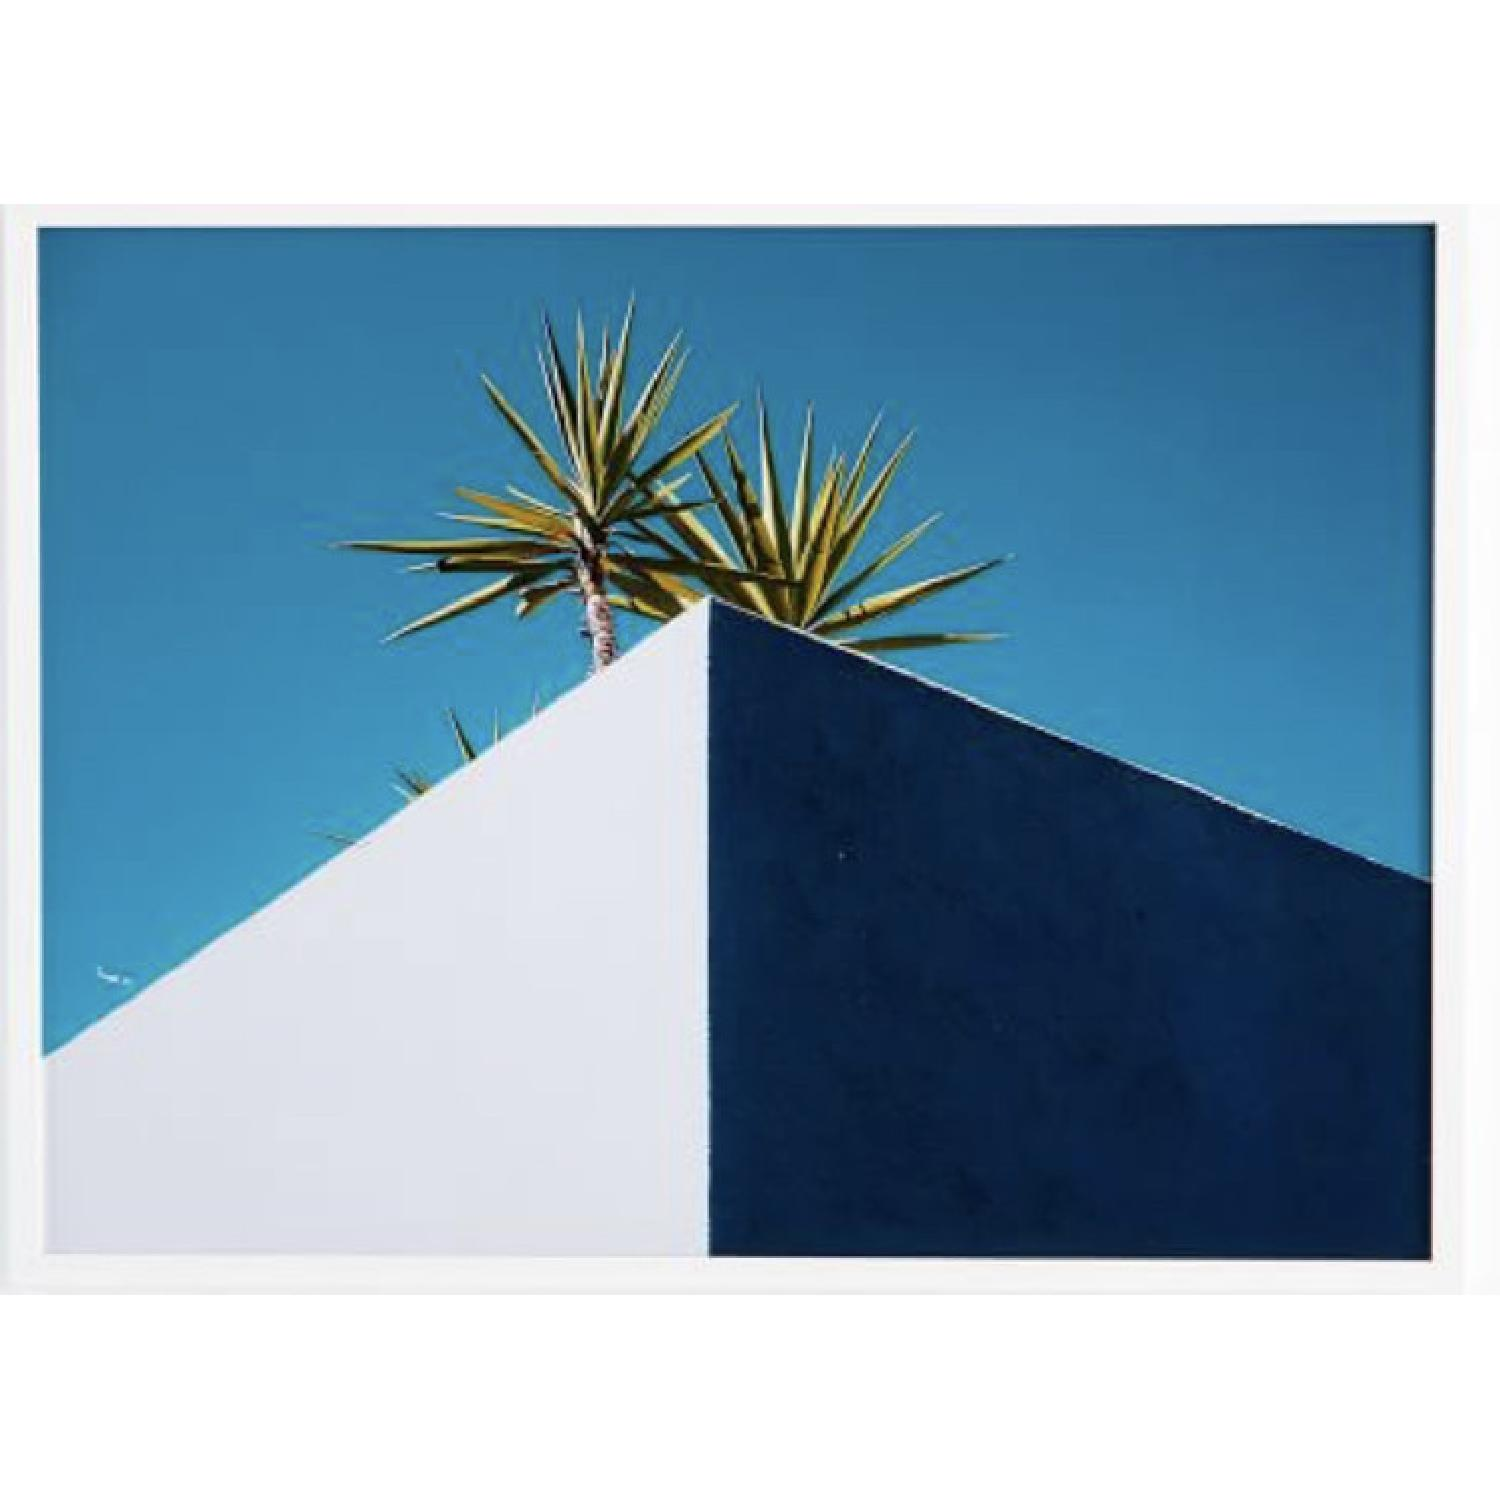 West Elm Framed Print - Palm Trees On A White Roof - image-1